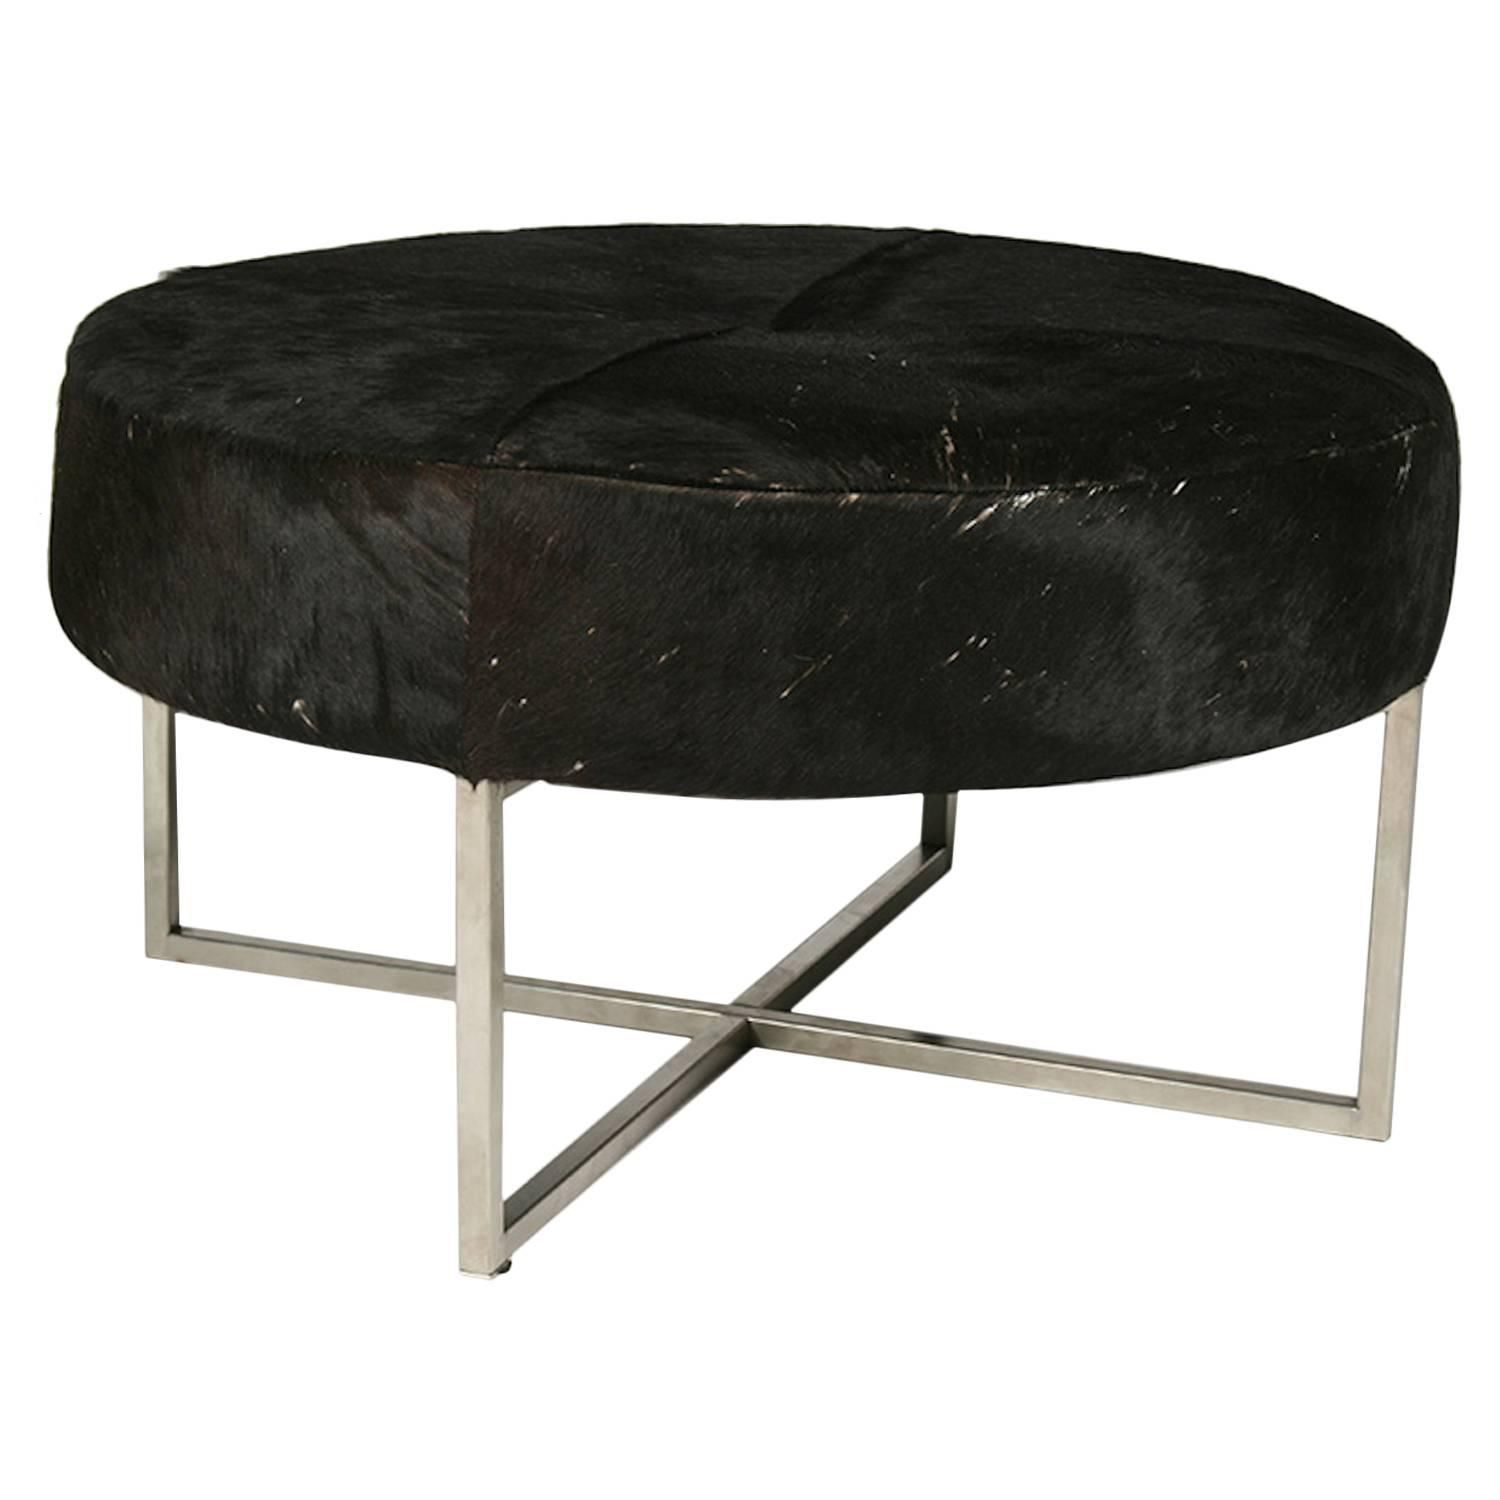 mid century modern ottoman. Mid-Century Modern Cow Hide Upholstered Round Bench | See More Antique And Ottomans Poufs At Https://www.1stdibs.com/furniture/seating/ottomans- Mid Century Ottoman N